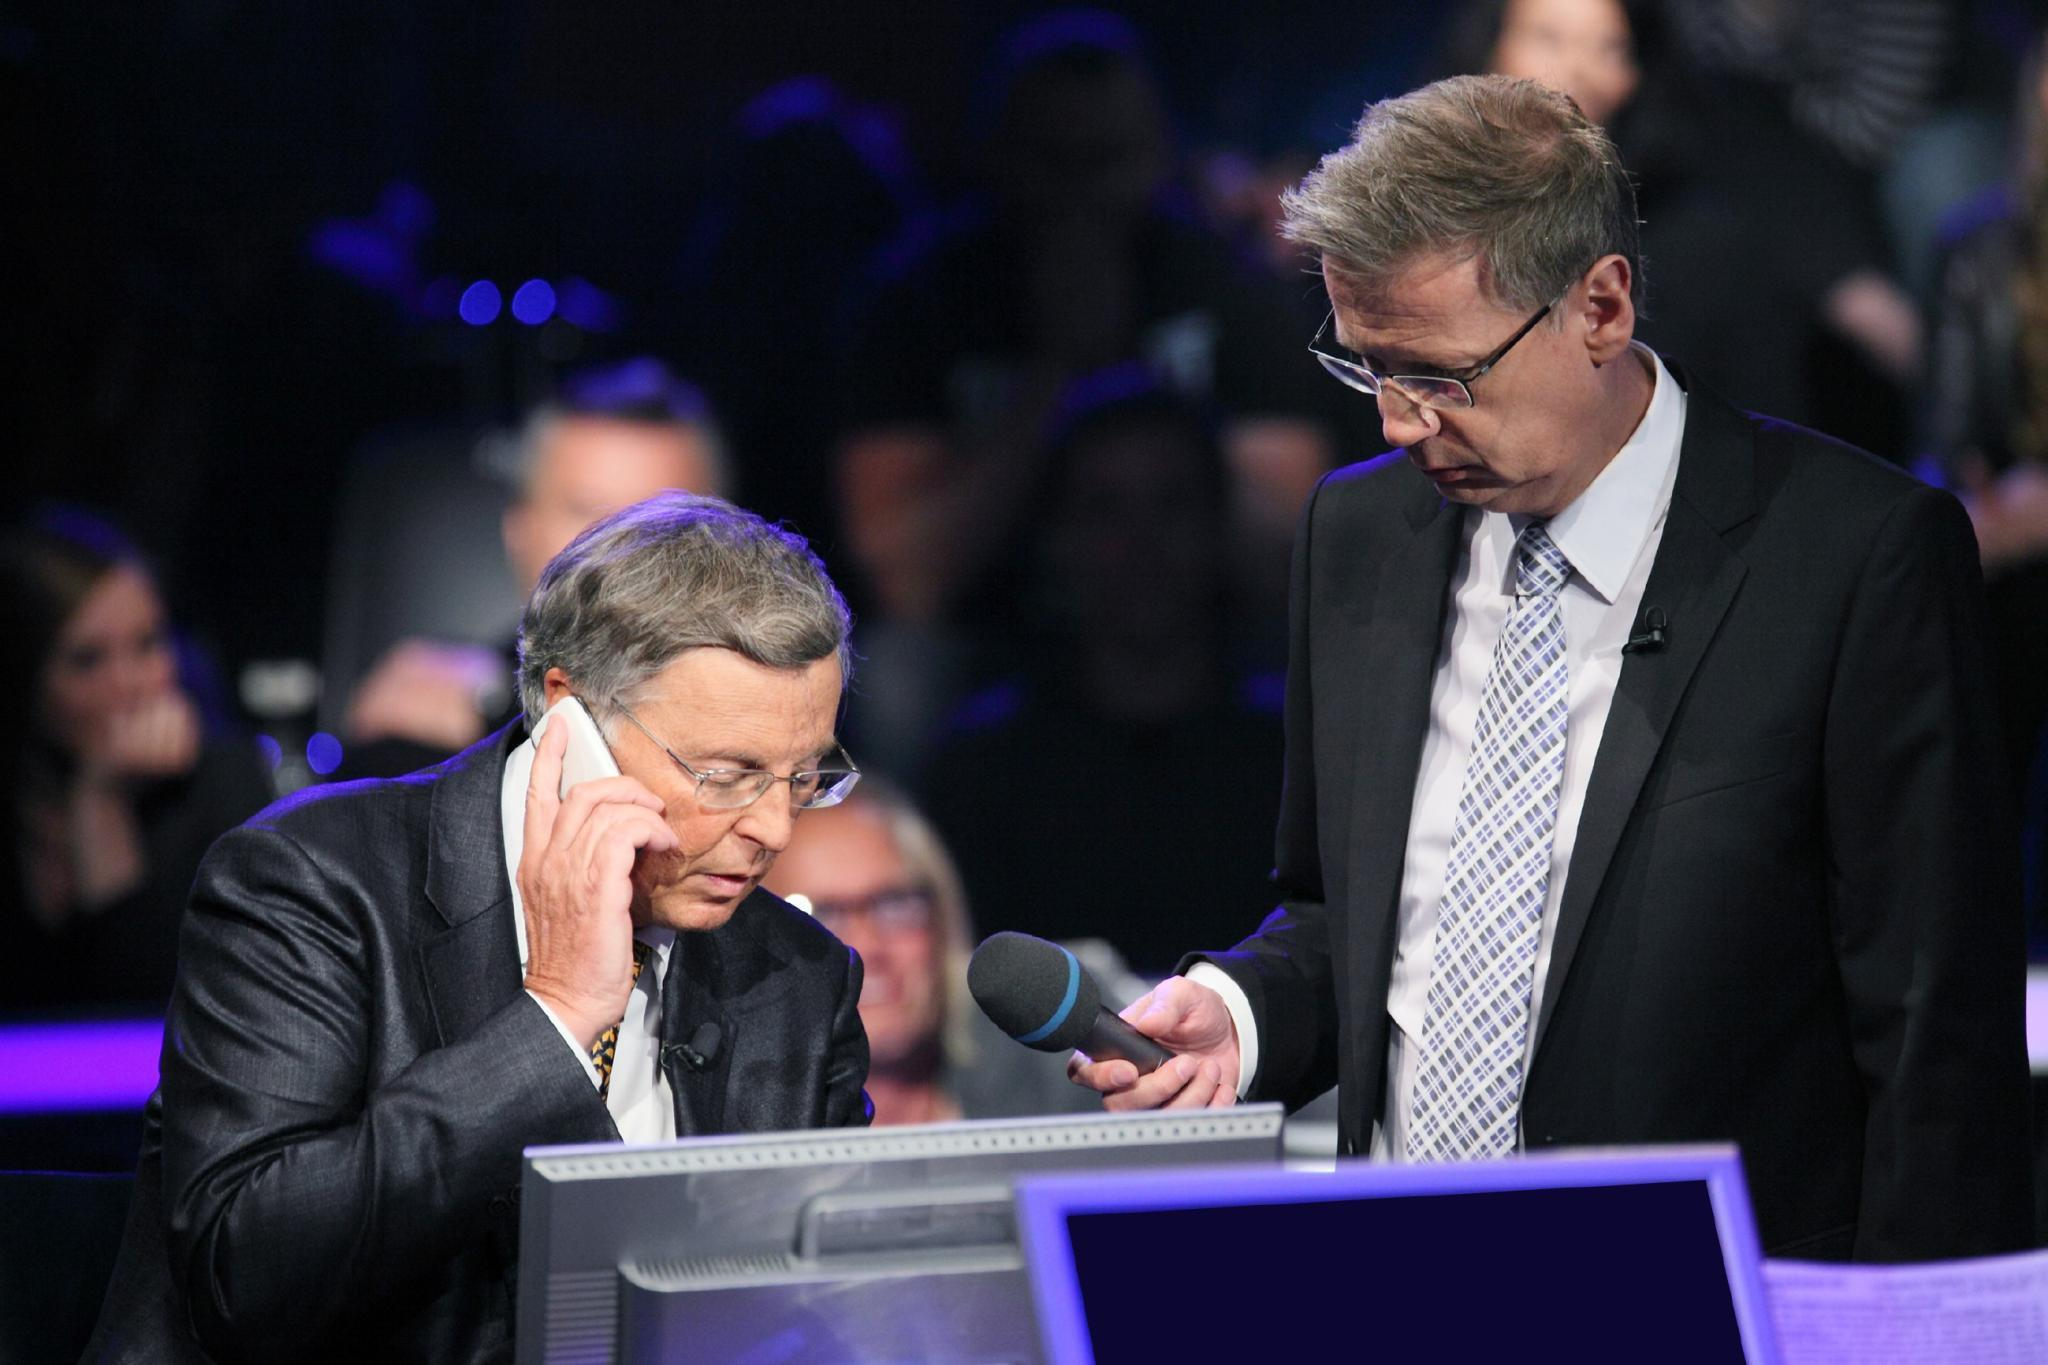 Wolfgang Bosbach, Günther Jauch